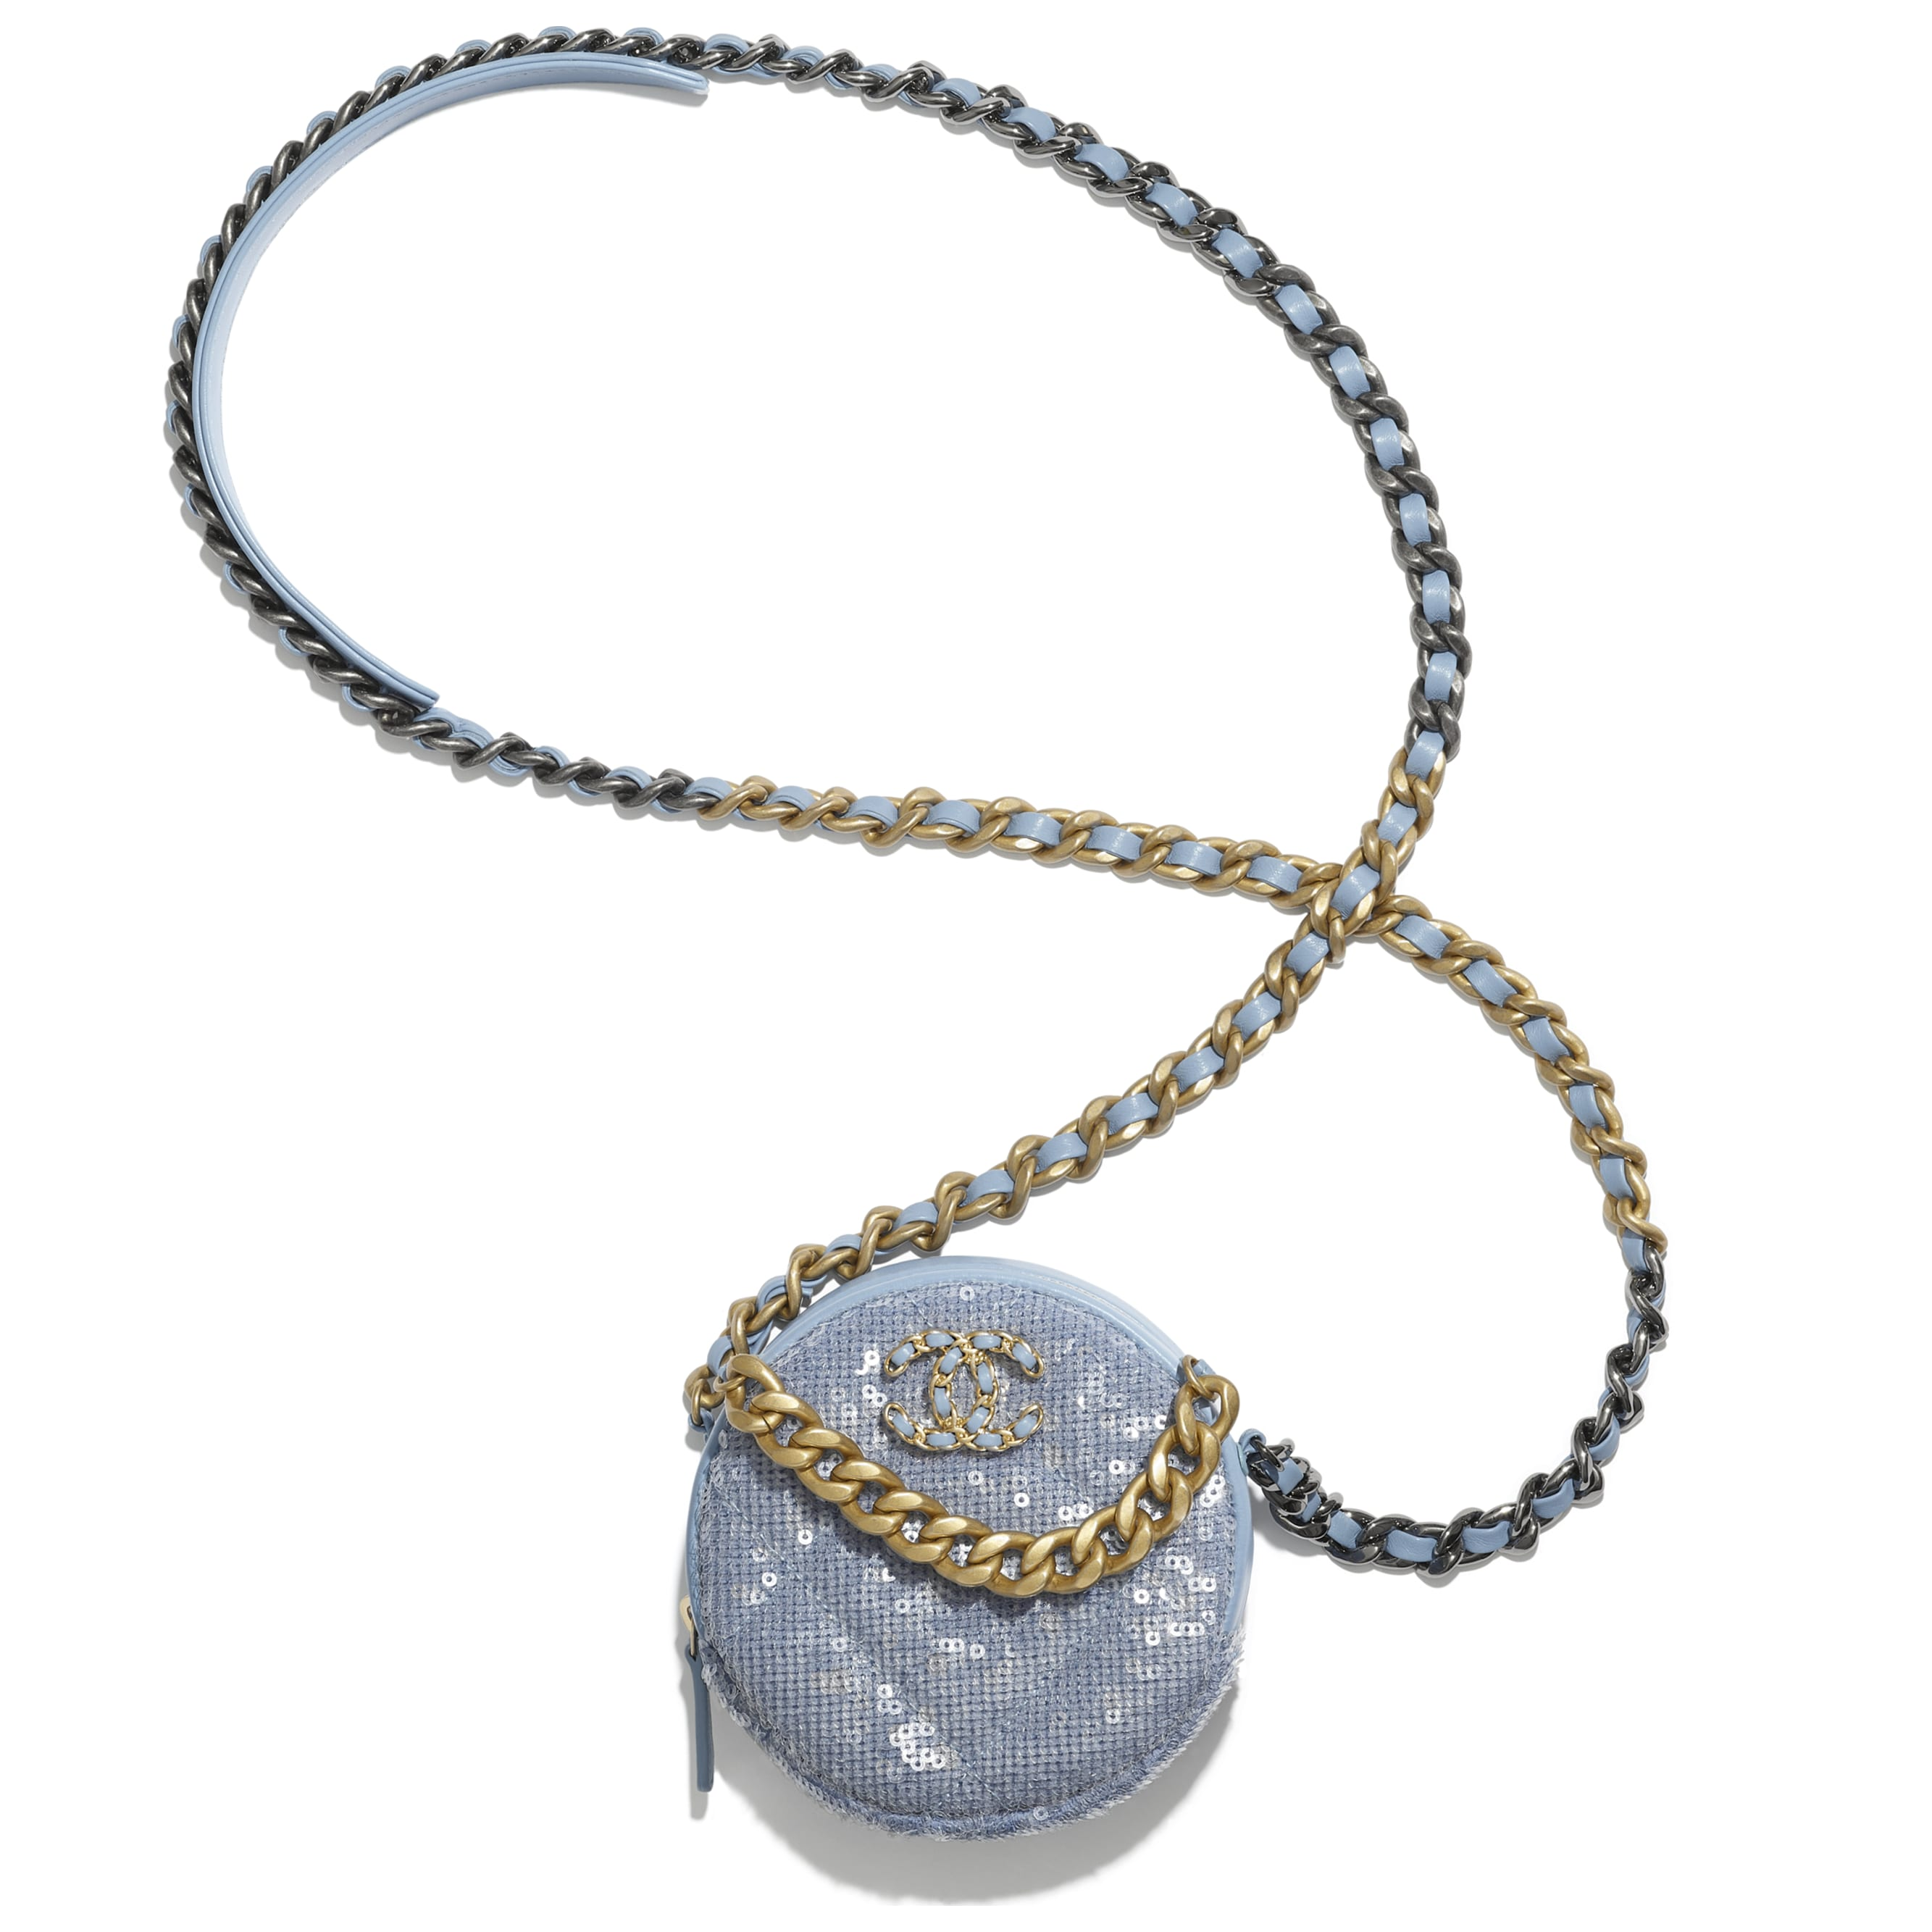 CHANEL 19 Clutch with Chain - Sky Blue - Sequins, calfksin, silver-tone & gold-tone metal - CHANEL - Other view - see standard sized version